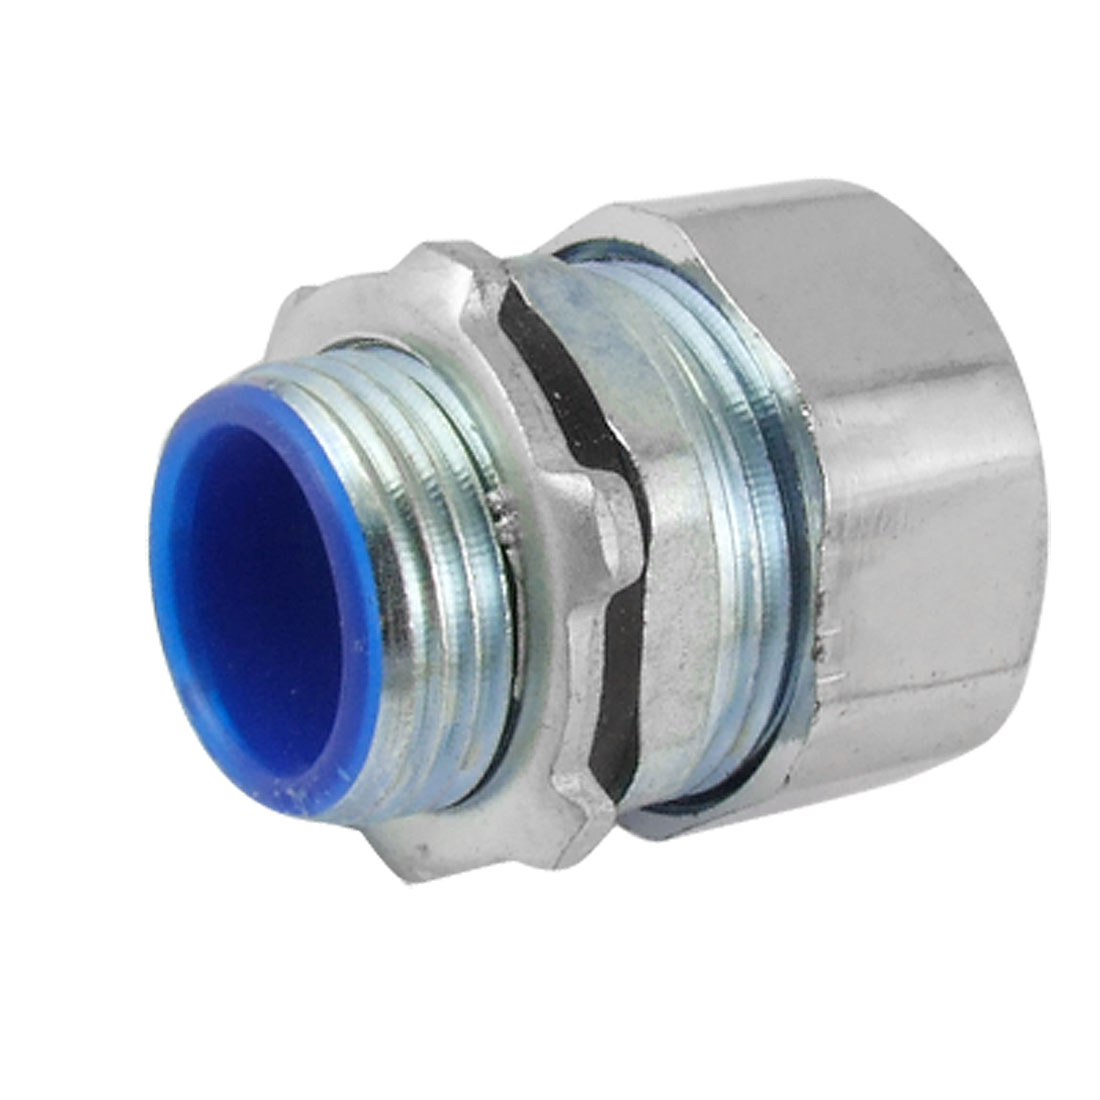 19mm Male Thread to 11mm Corrugated Conduit Quick Coupling Metal Connector